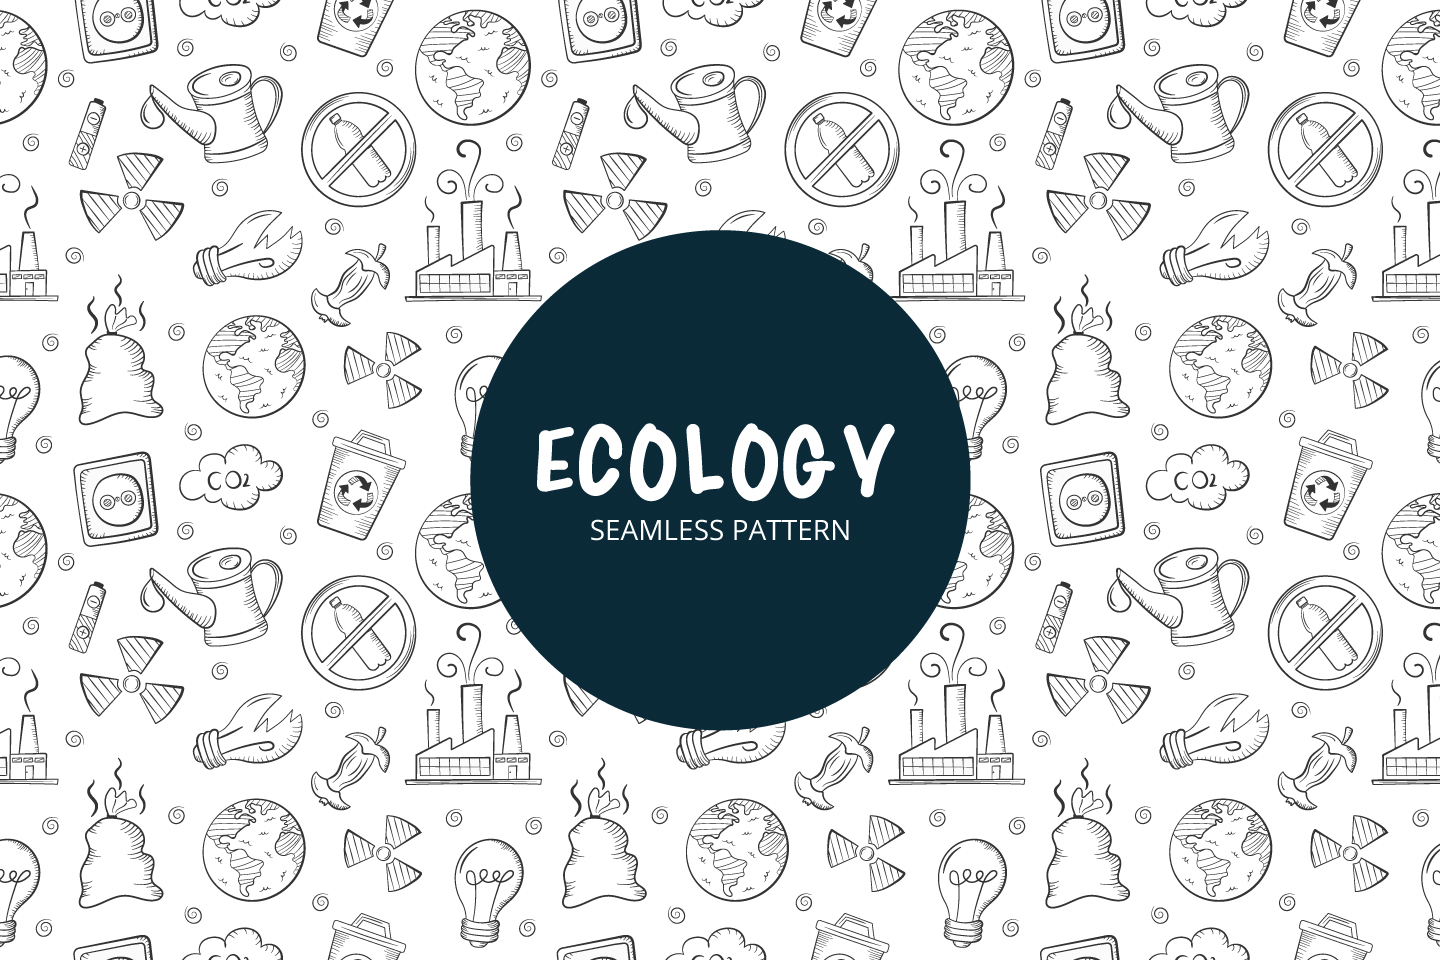 Seamless Vector Pattern on the Theme of Ecology